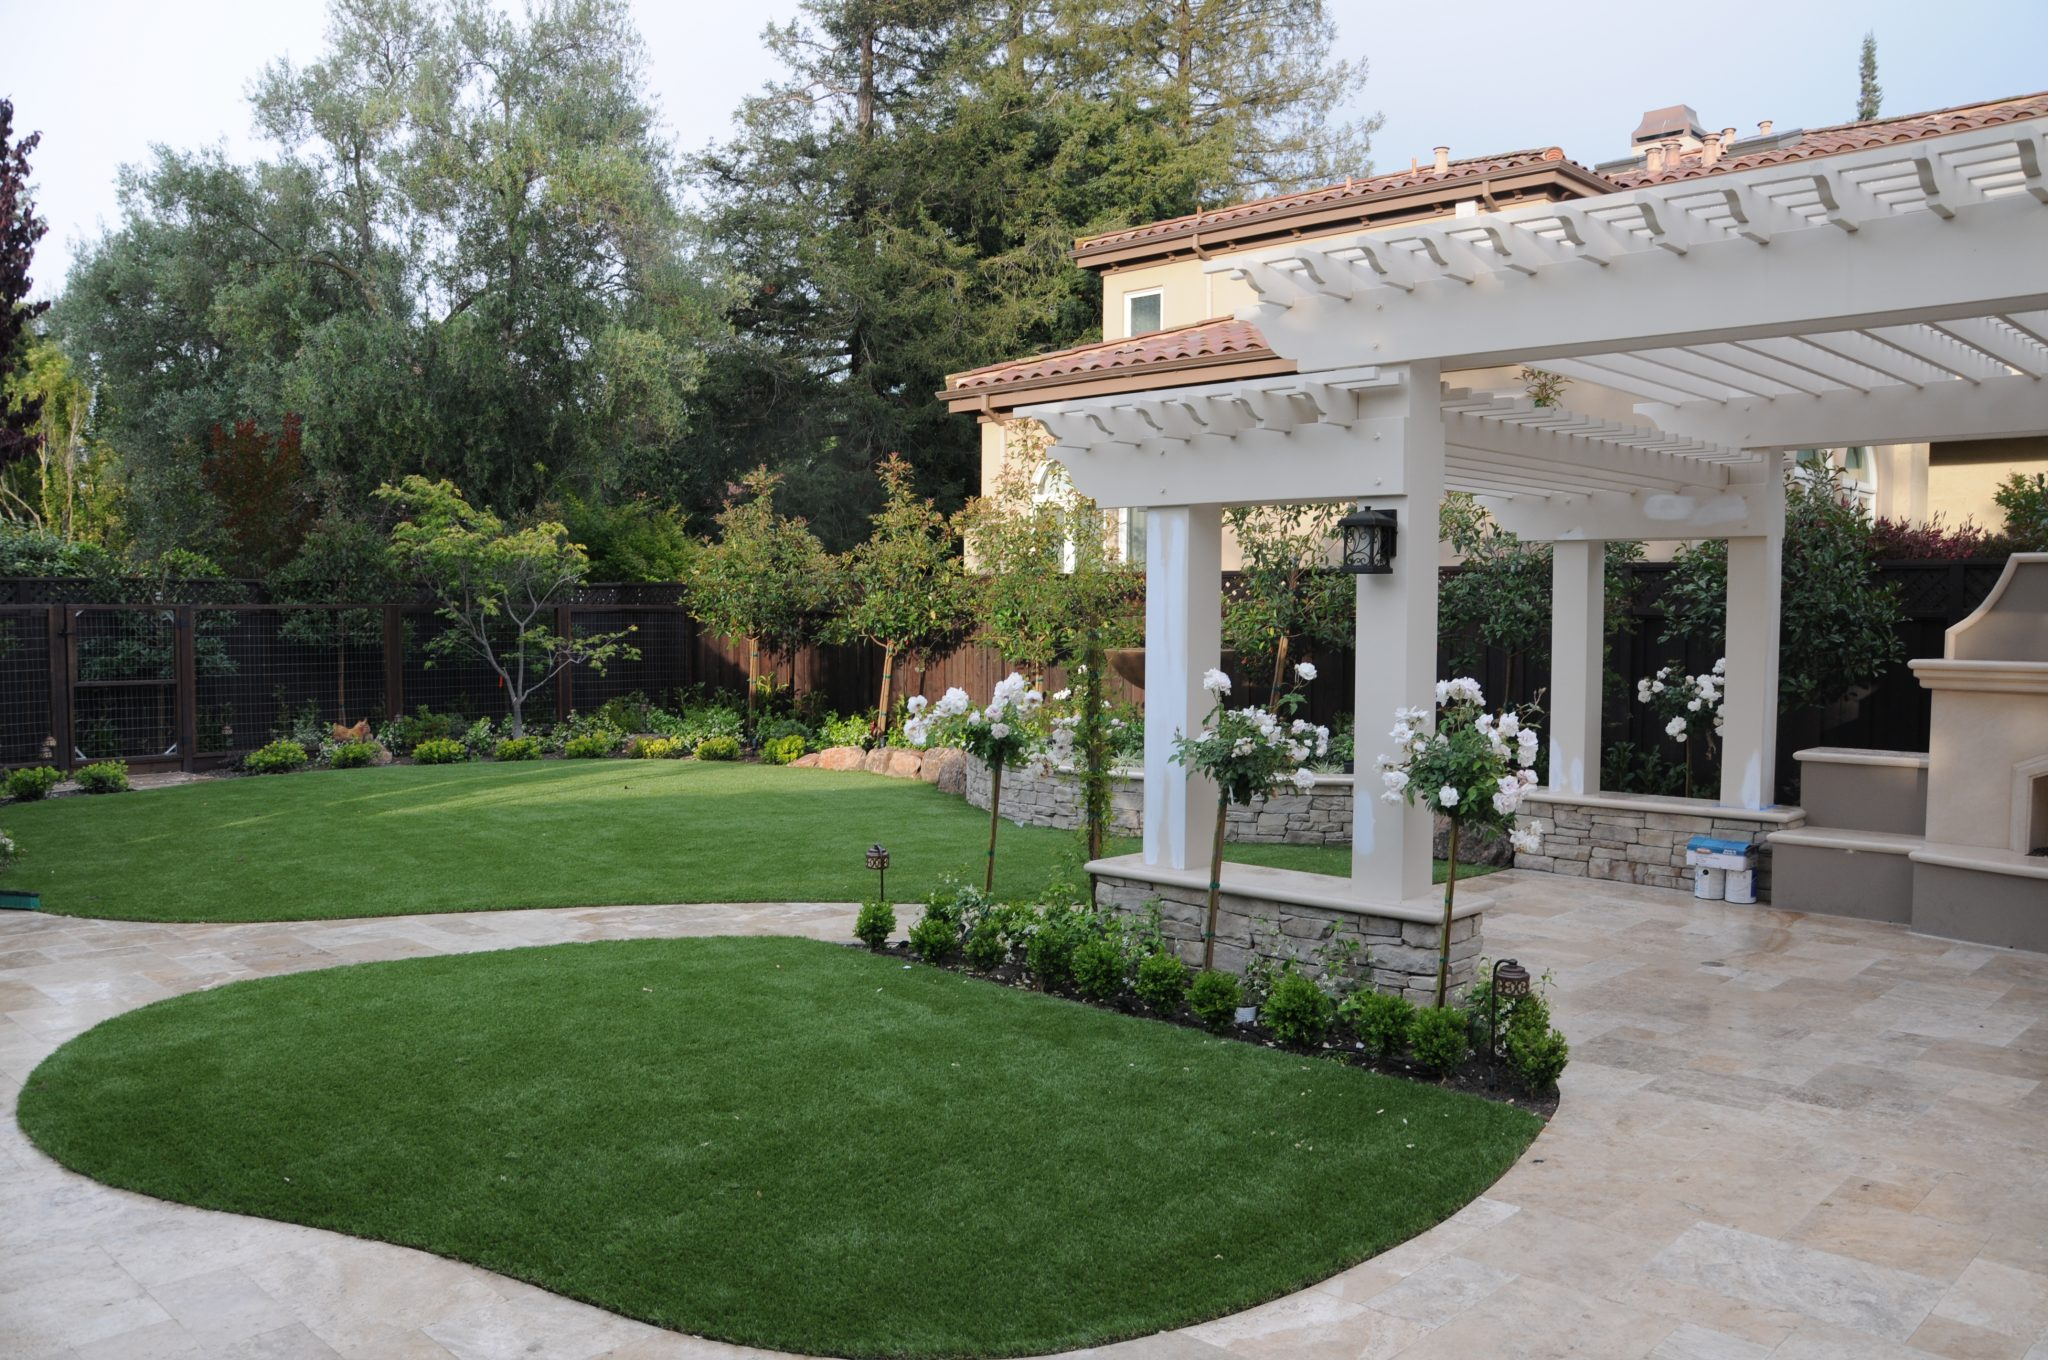 How Much Water Can I Save with Artificial Turf?